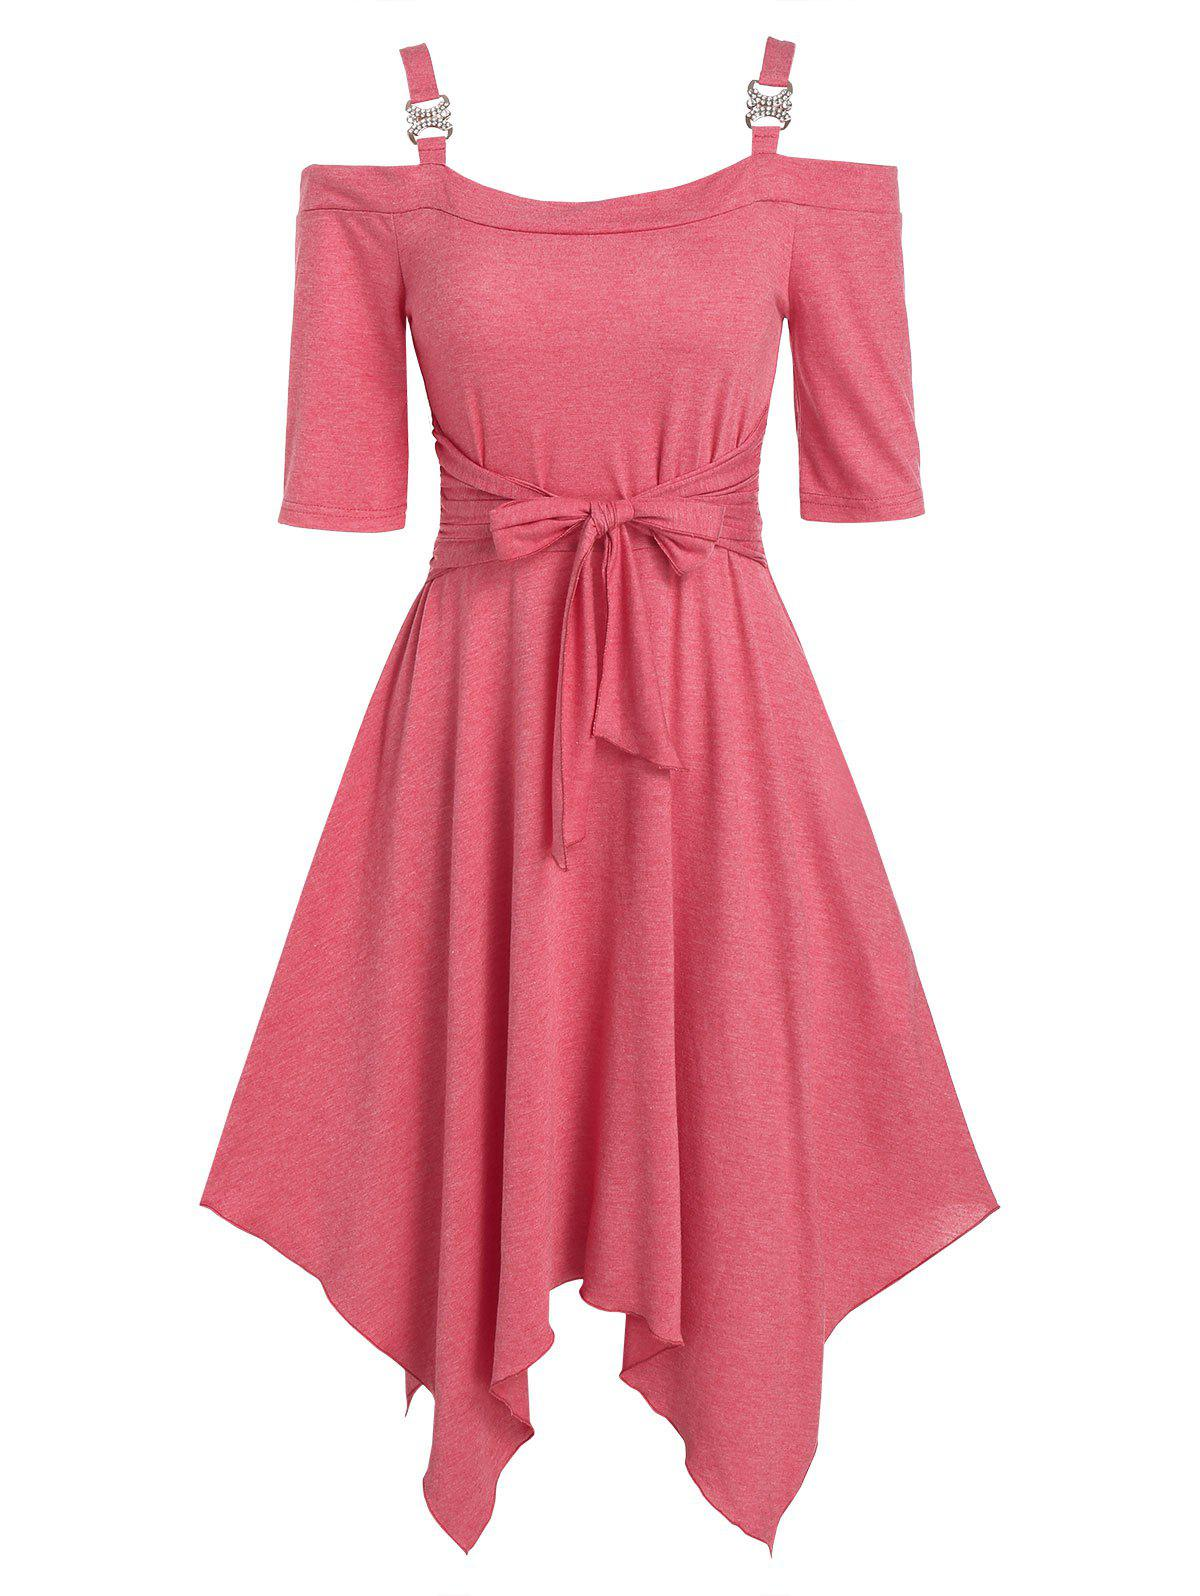 Plain Open Shoulder Bowkont Asymmetrical Dress - PINK XL